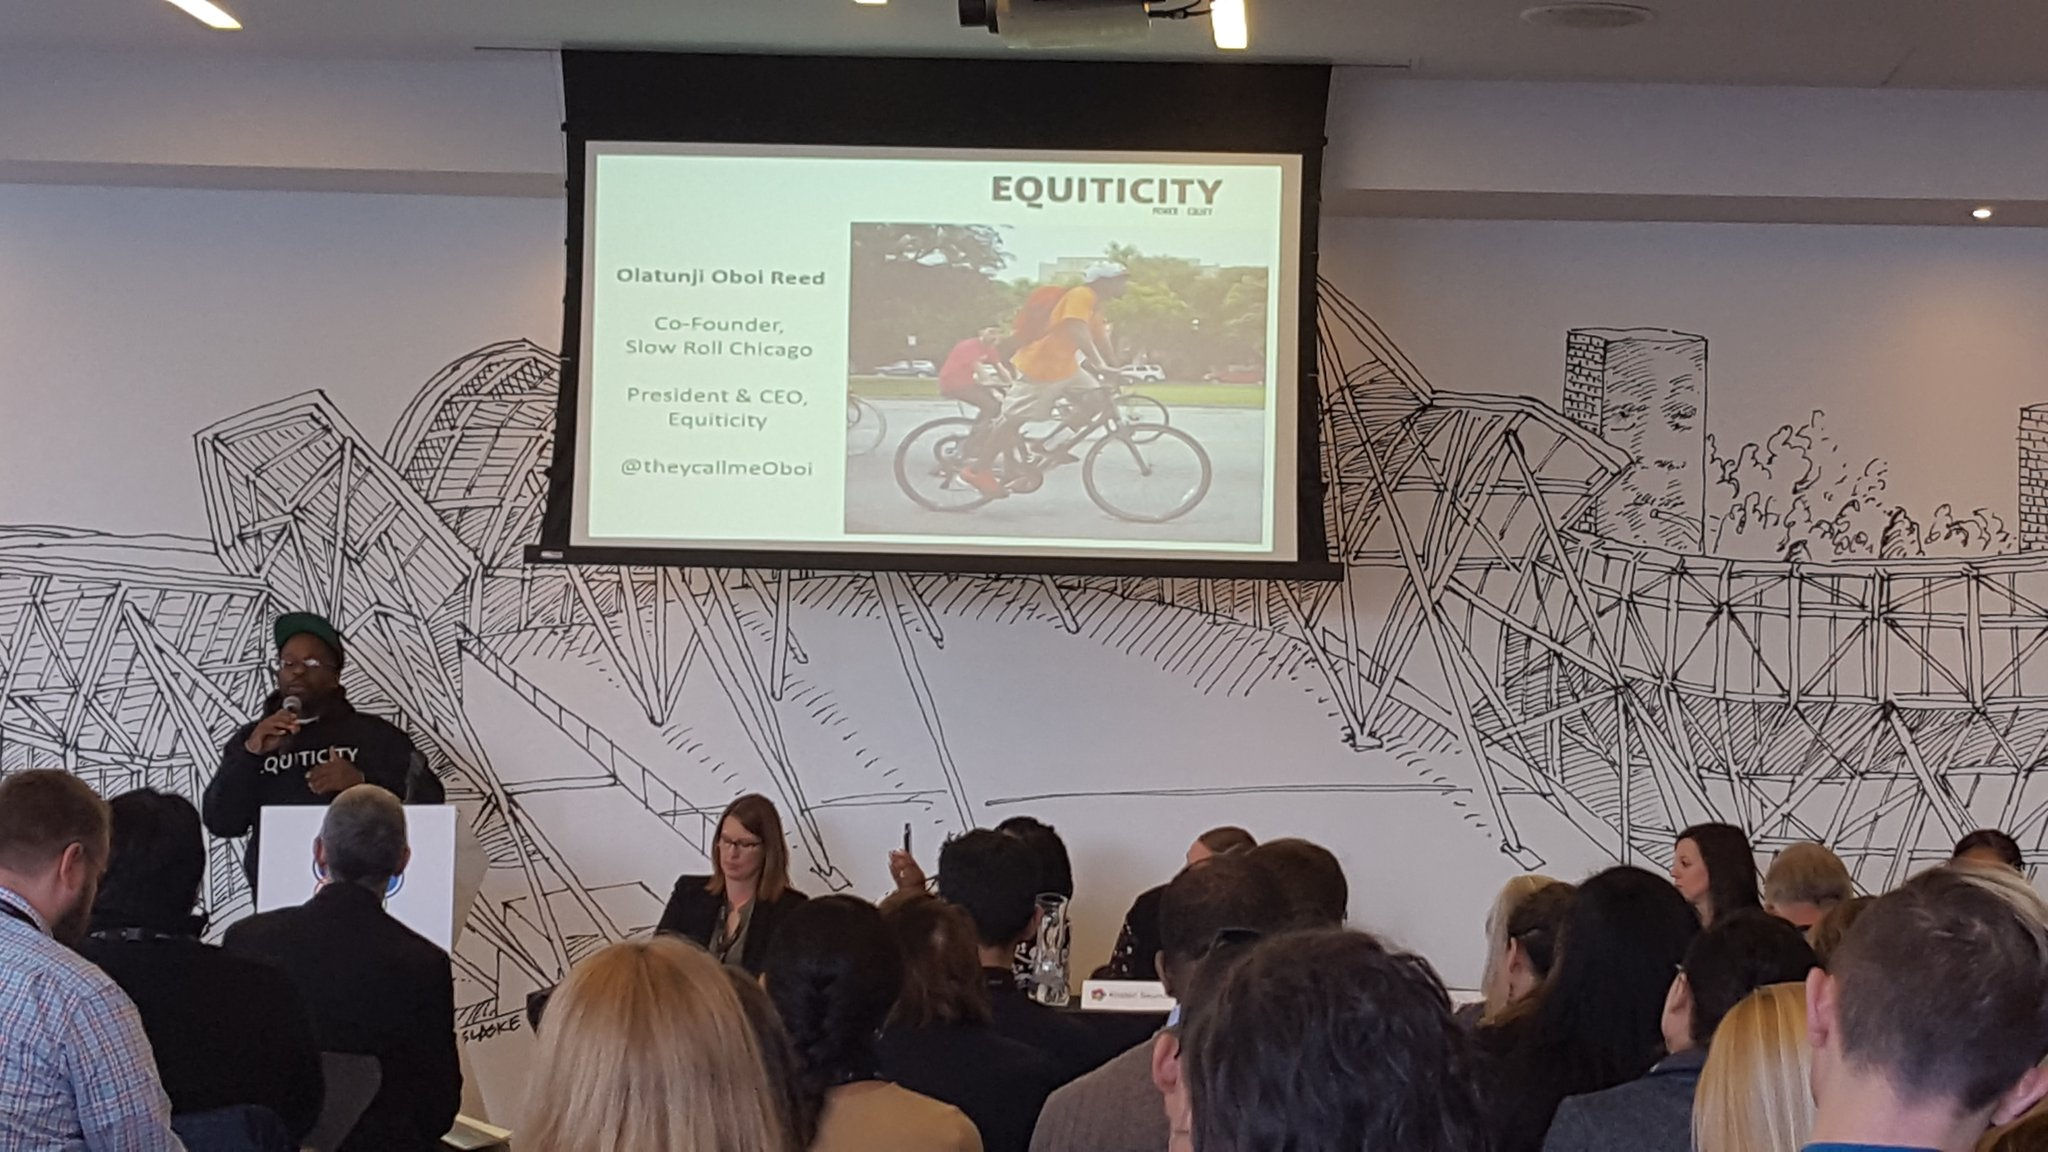 Oboi Reed of EquitiCity speaking at SUMC18 reminds us that mobility is transformative, and key to racial equity. (Photo: MZimmerman, 2018)